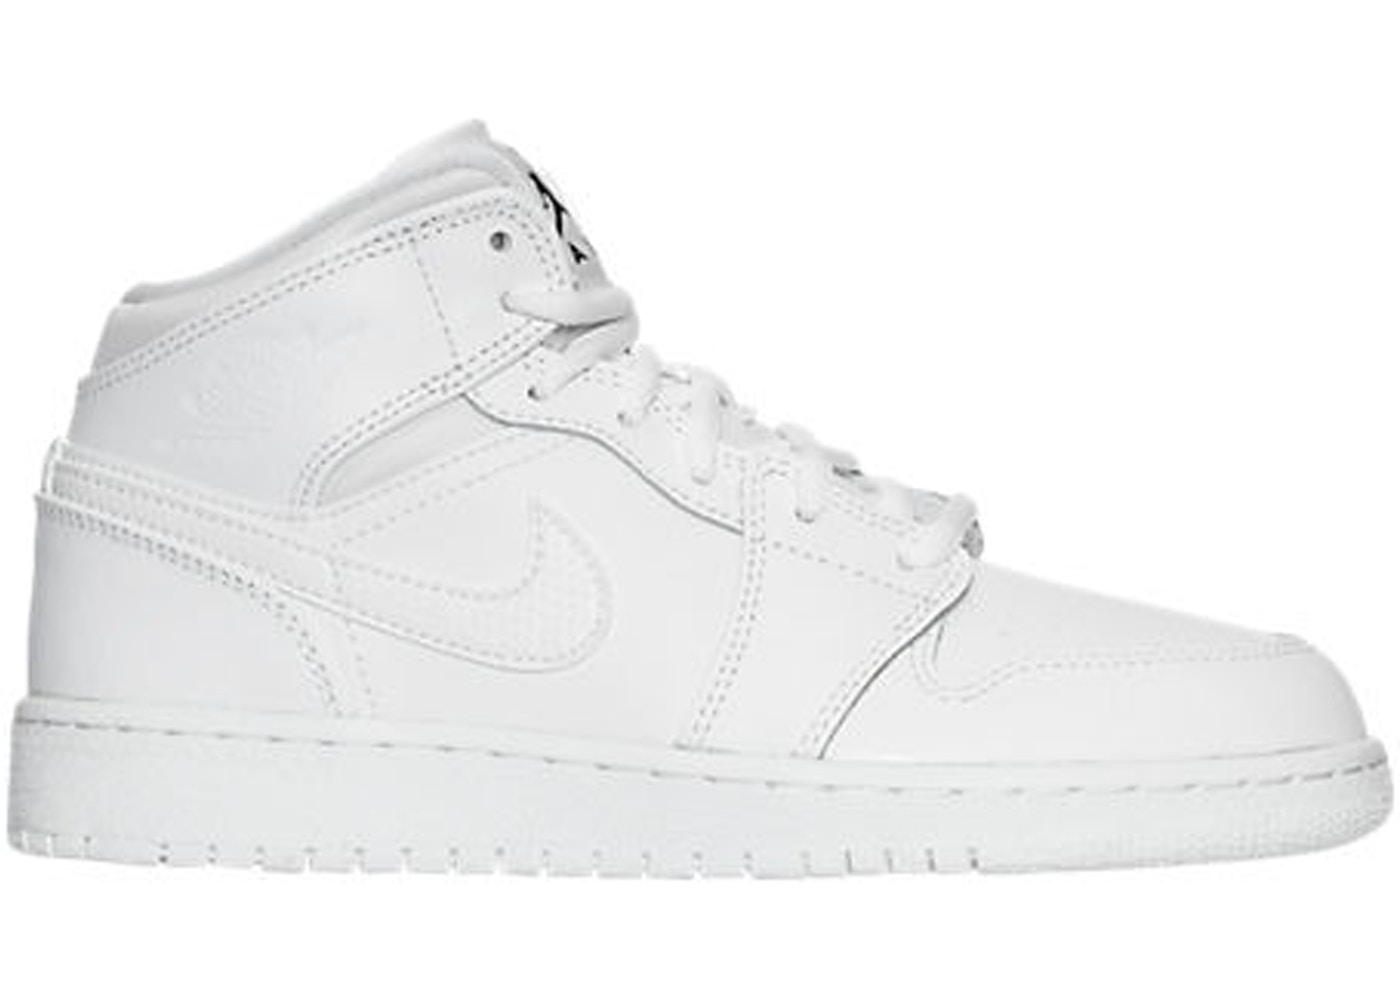 air jordan 1 white mid